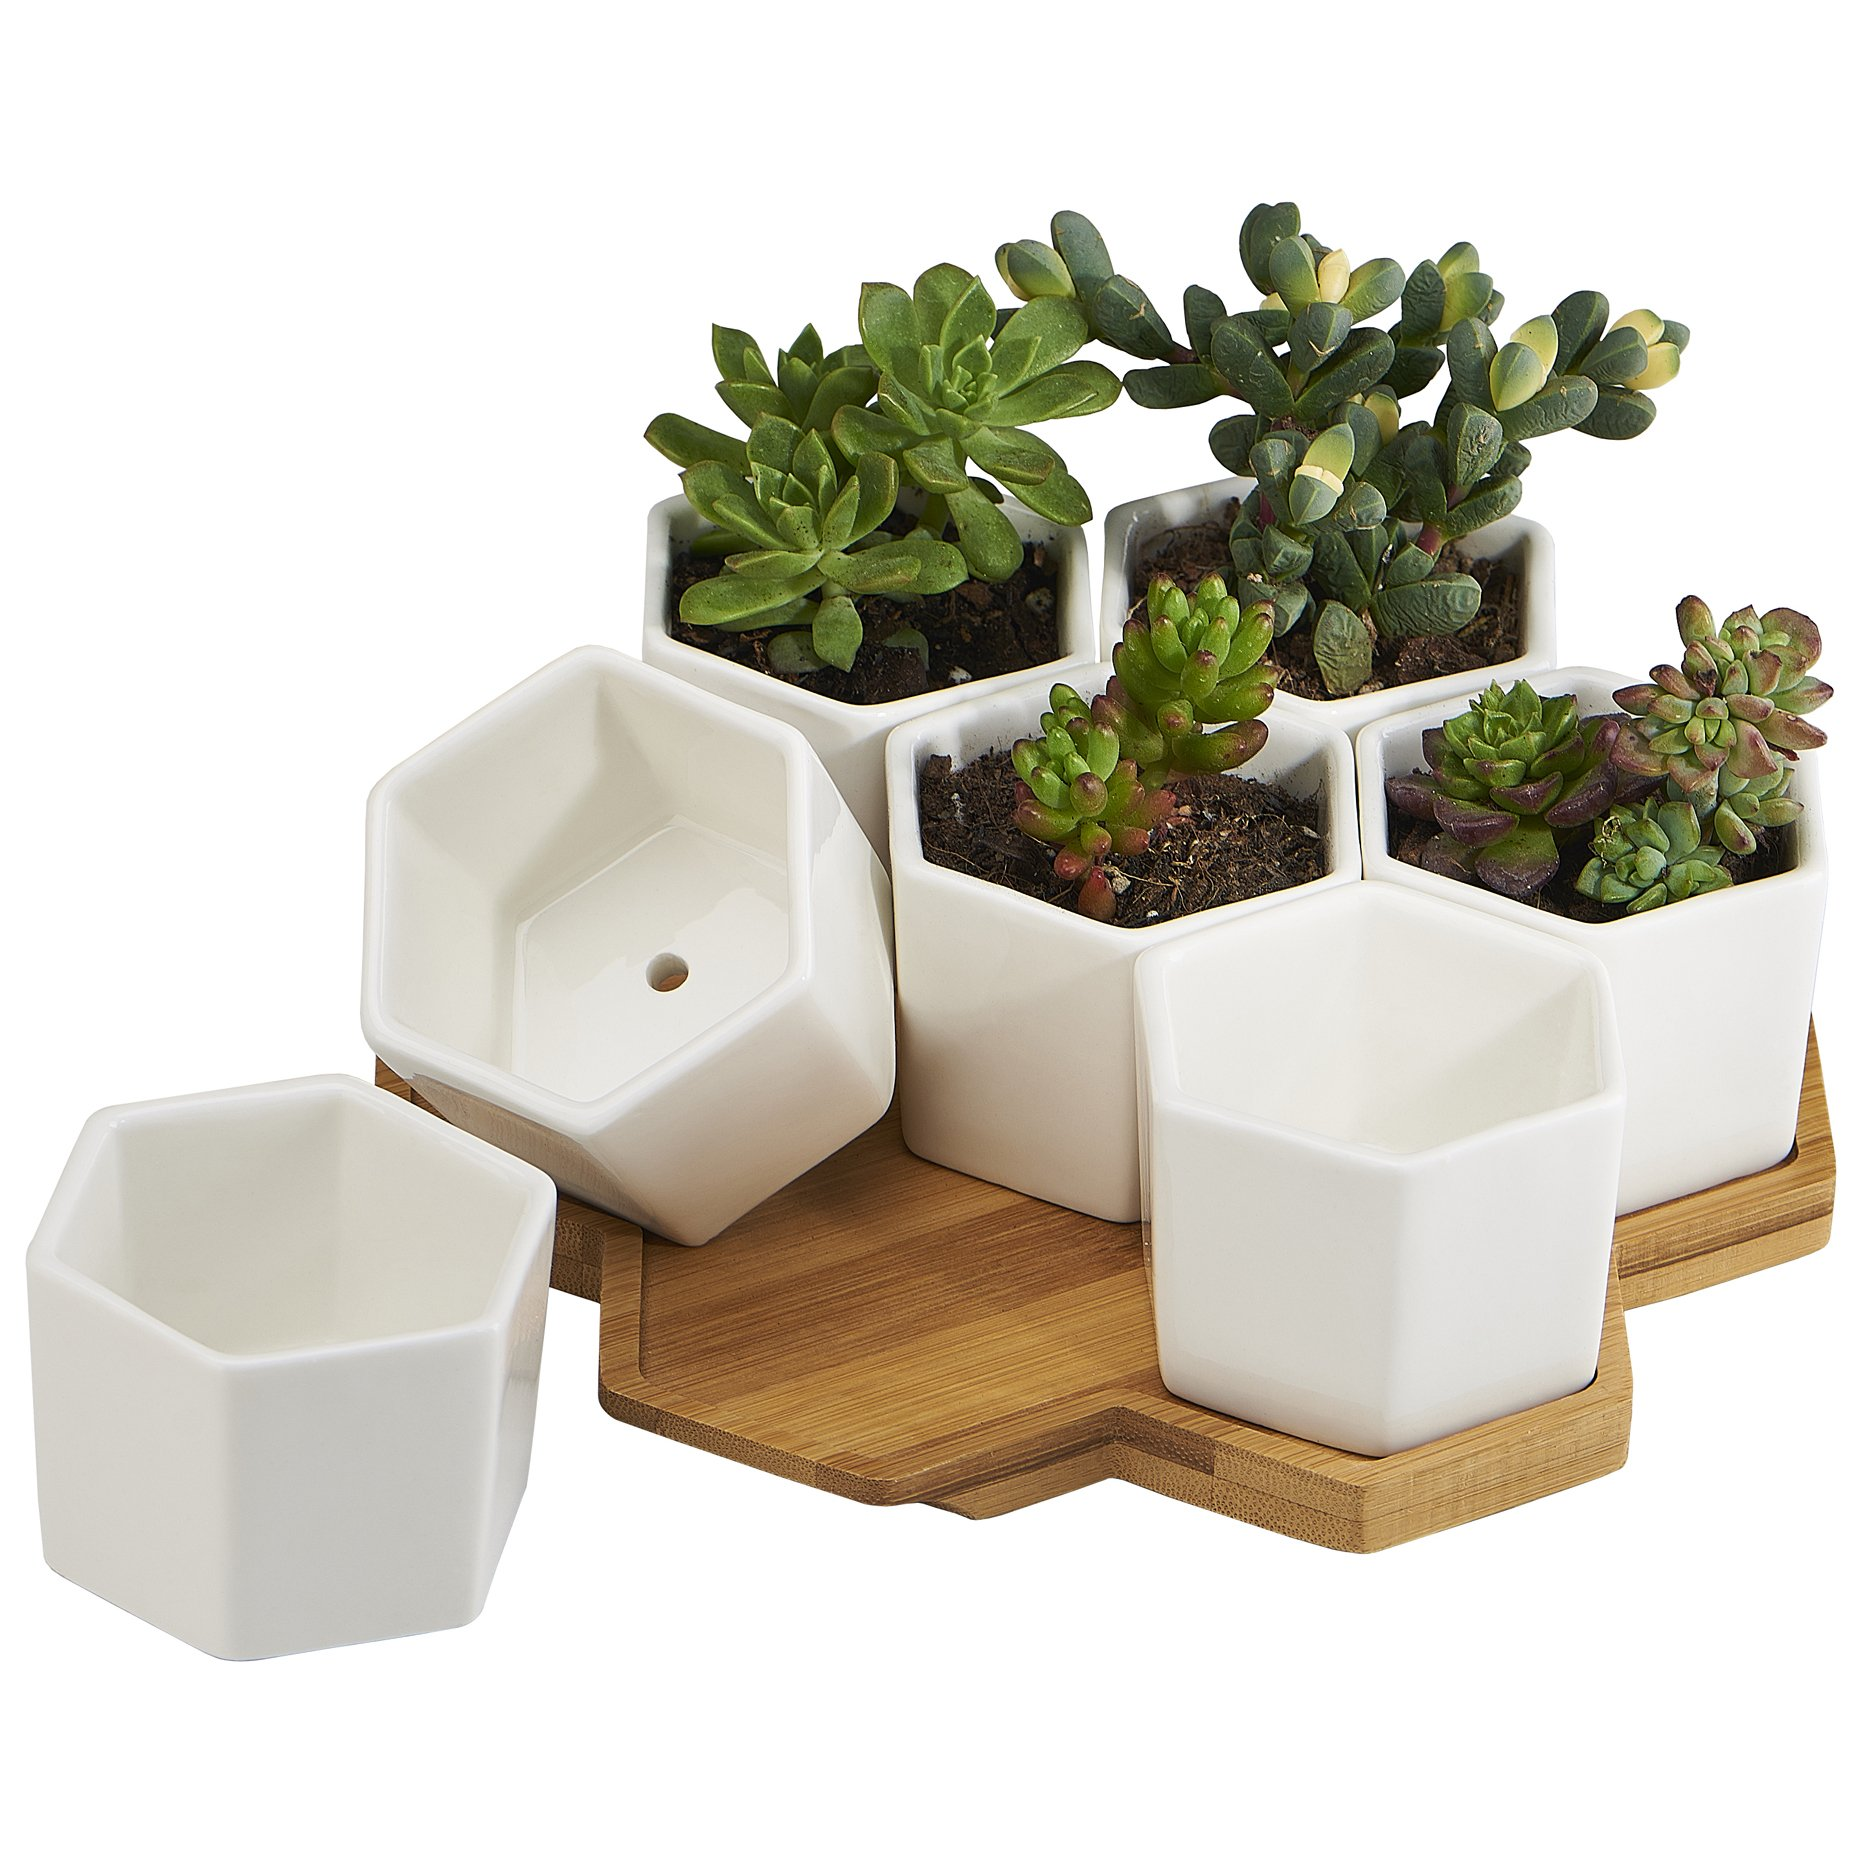 flowerplus Planter Pots Indoor, 7 Pack 2.75 Inch Modern White Ceramic Small Hex Succulent Cactus Flower Plant Pot with Bamboo Tray for Indoors Outdoor Office Home Garden Kitchen Decor (Hexagon) by flowerplus